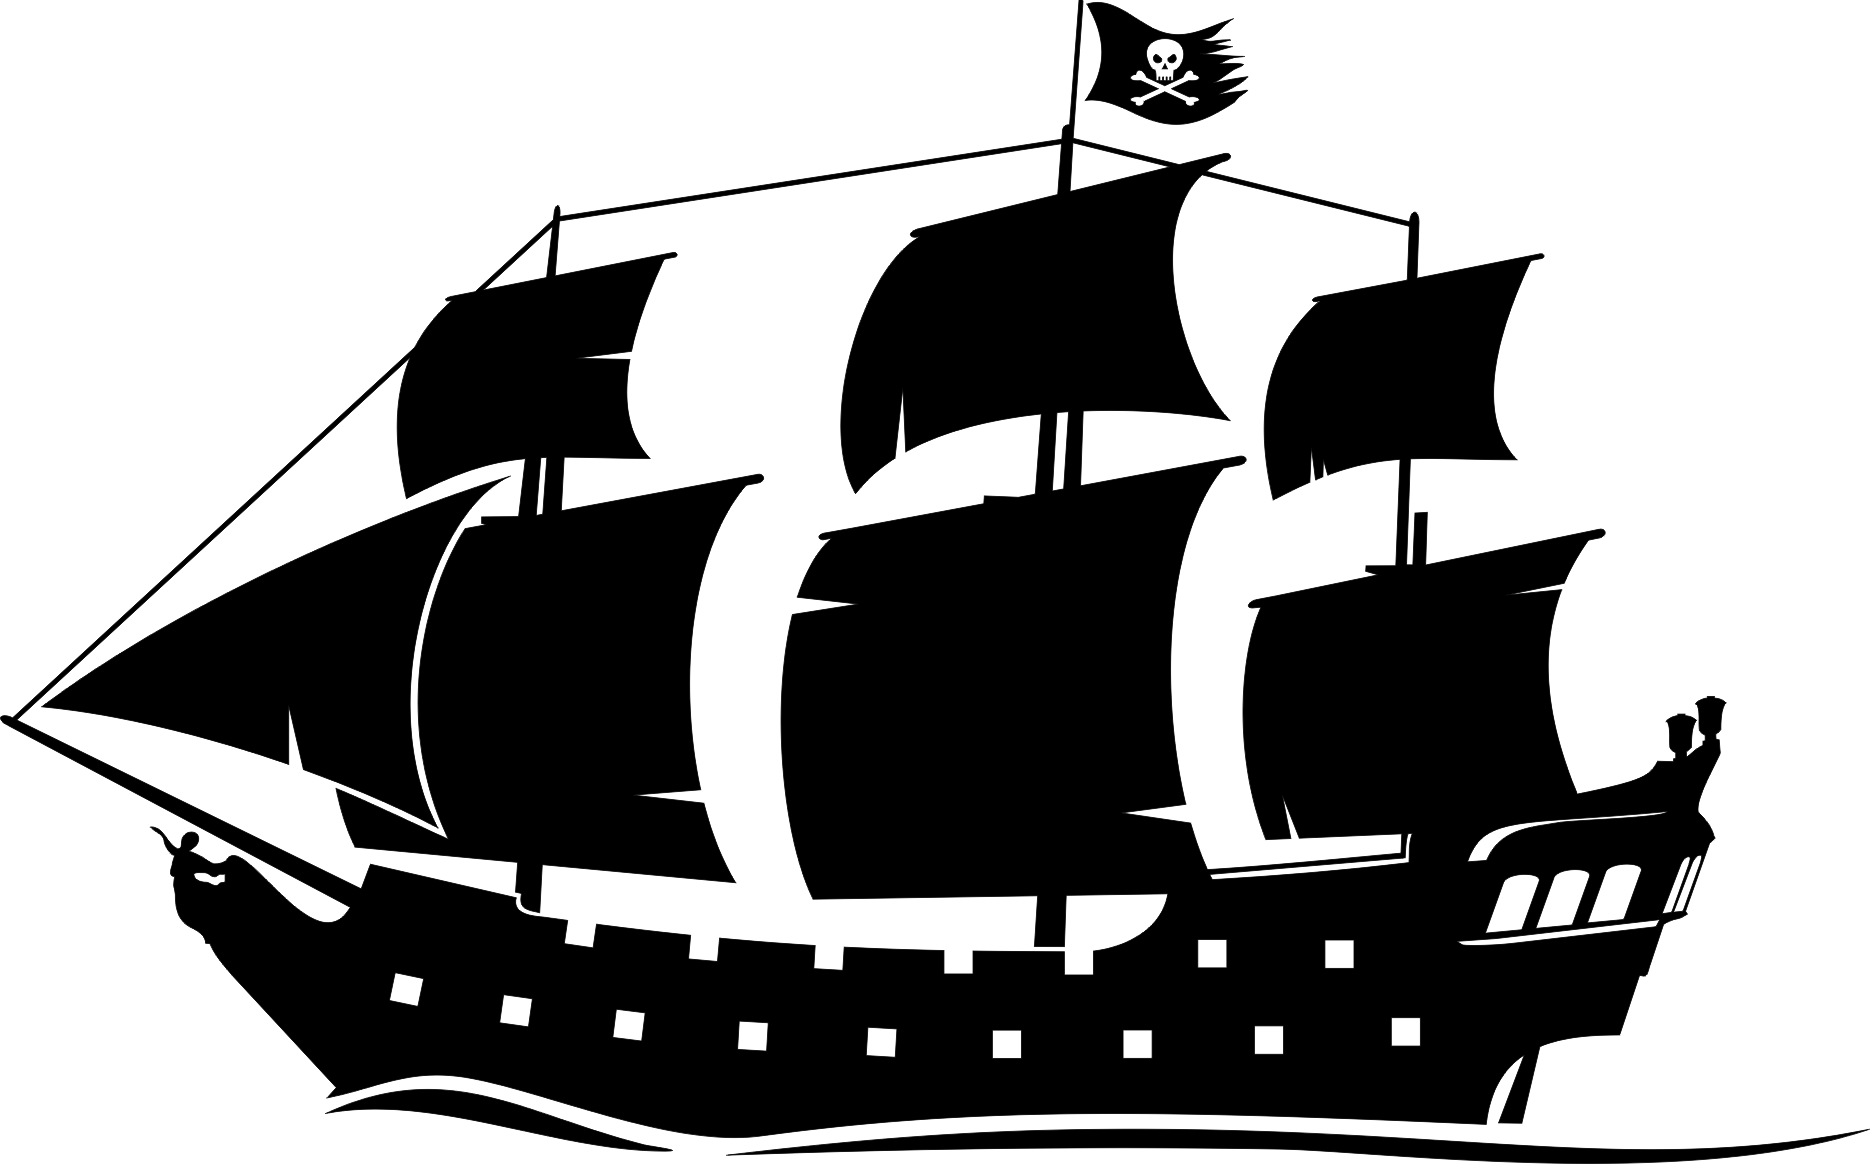 pirate ship drawings silhouette clip art.